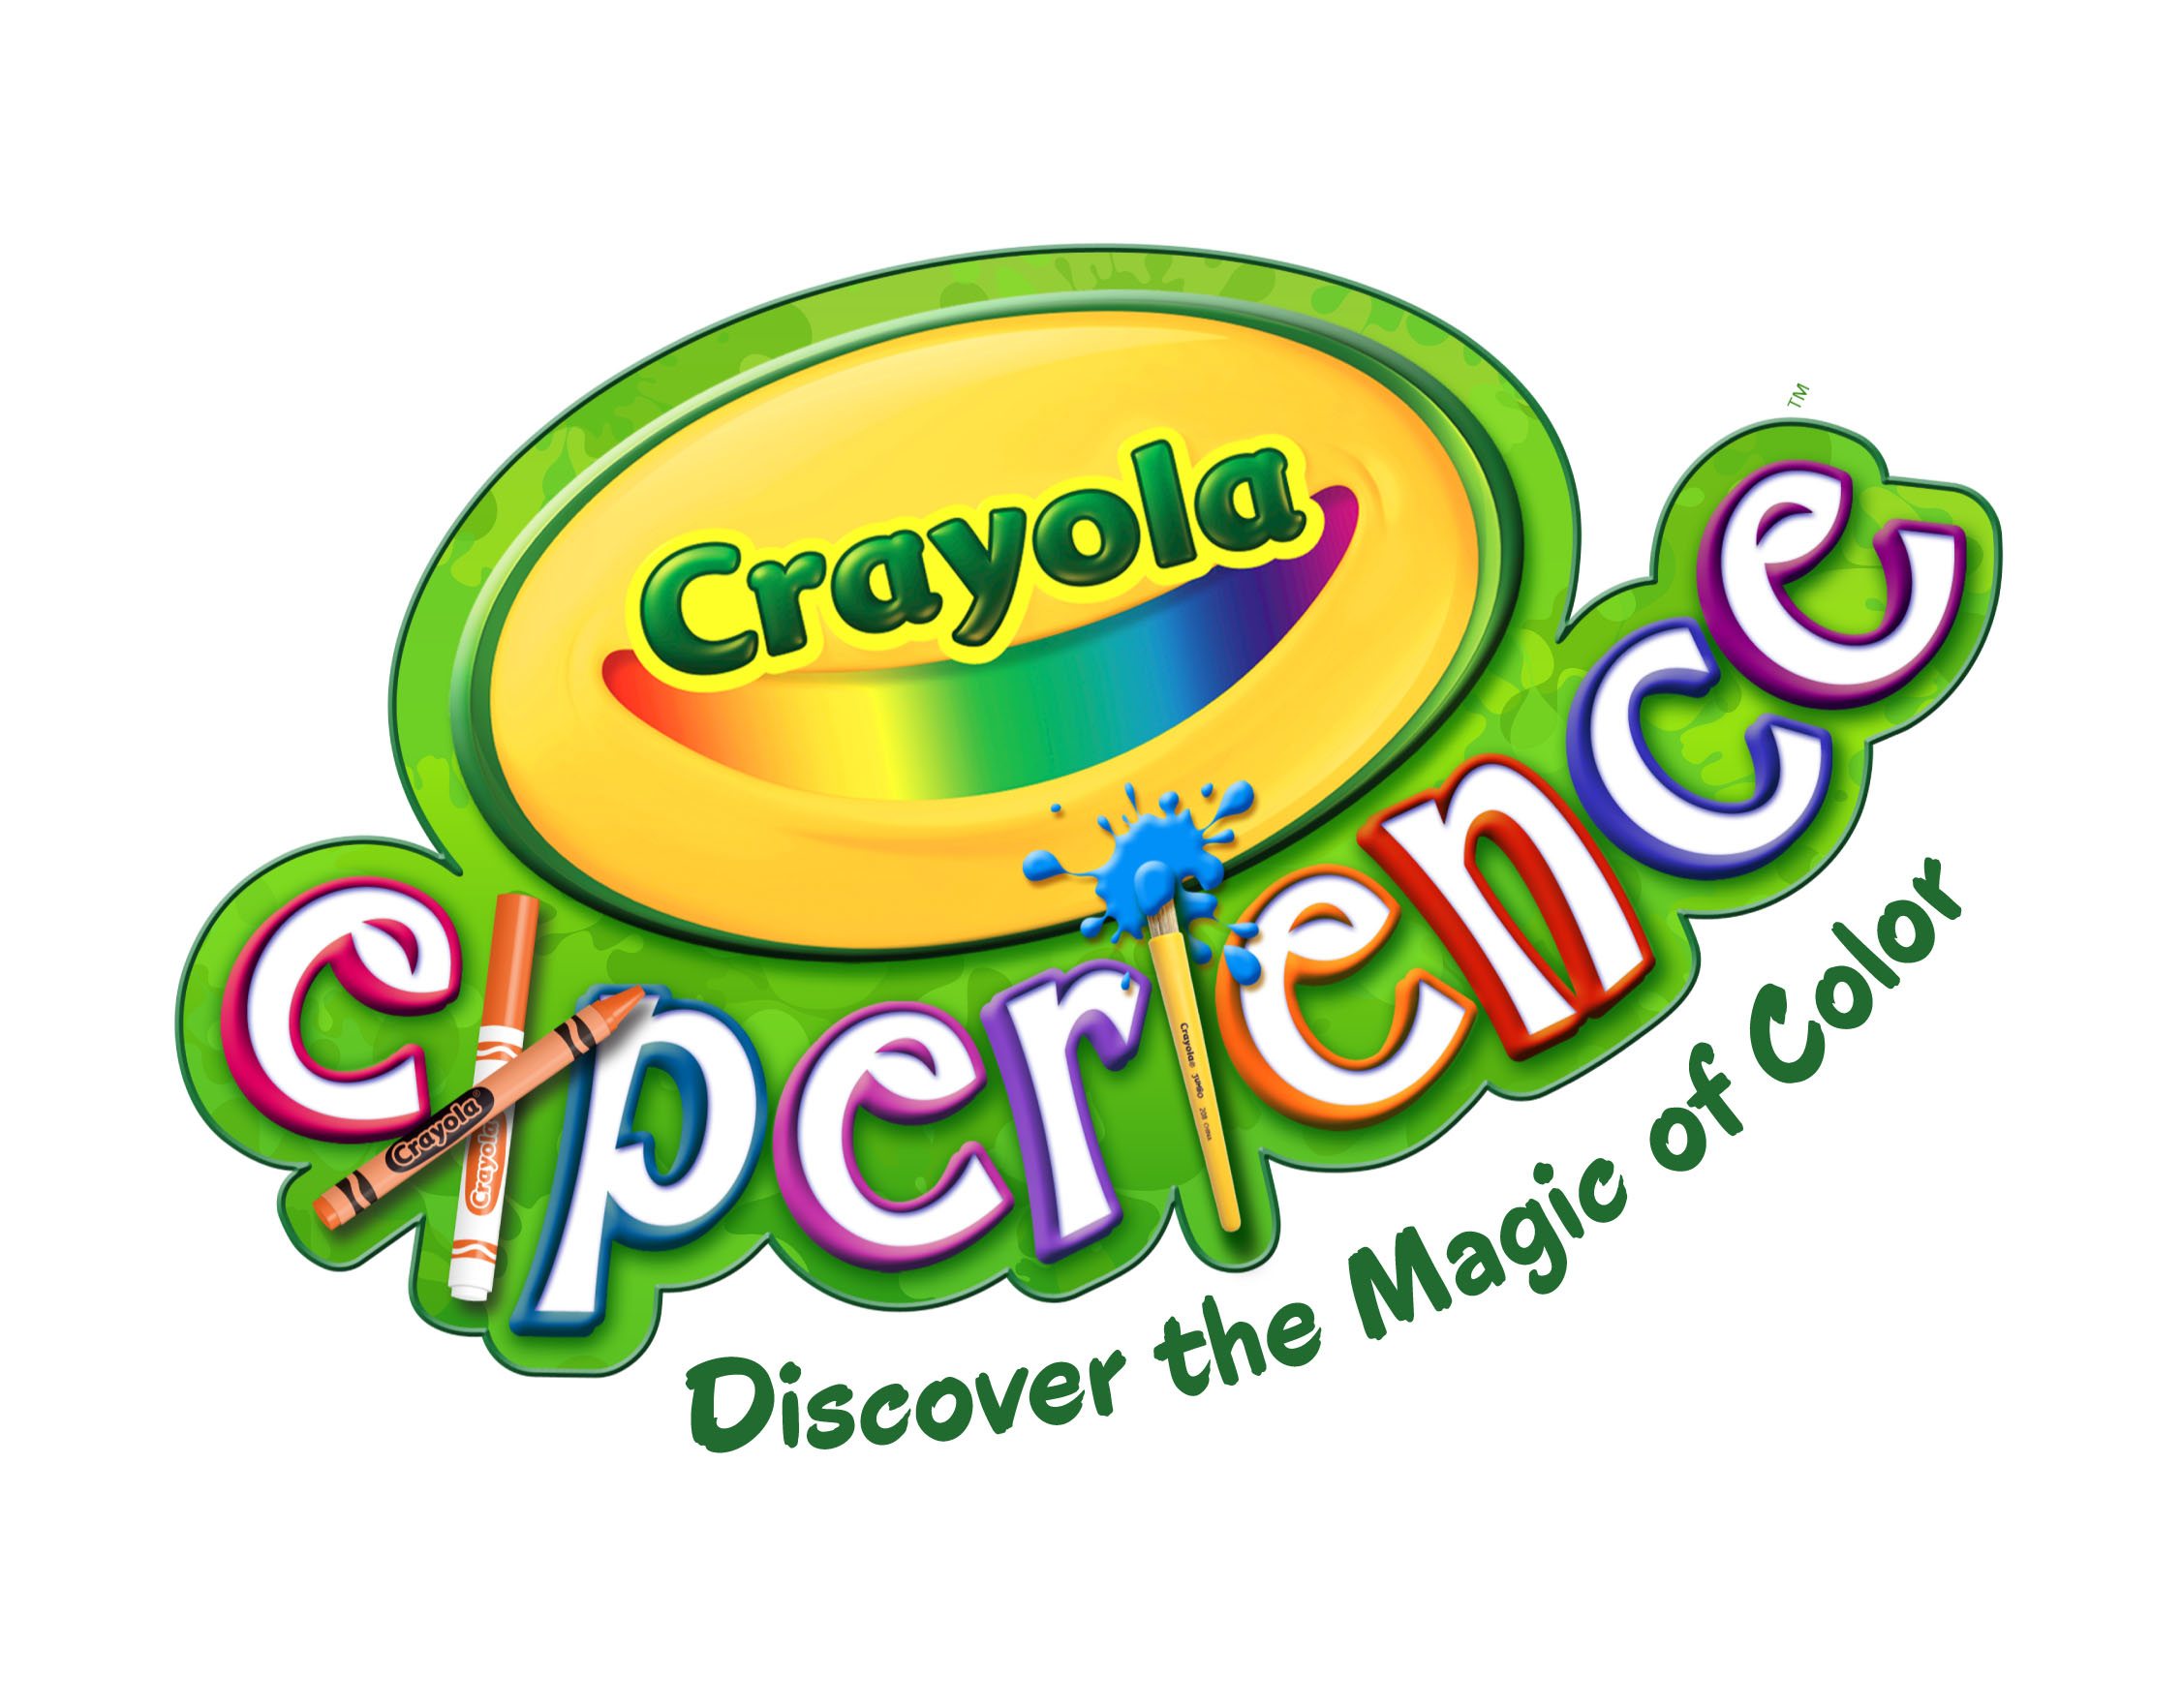 crayola experience opening remarks